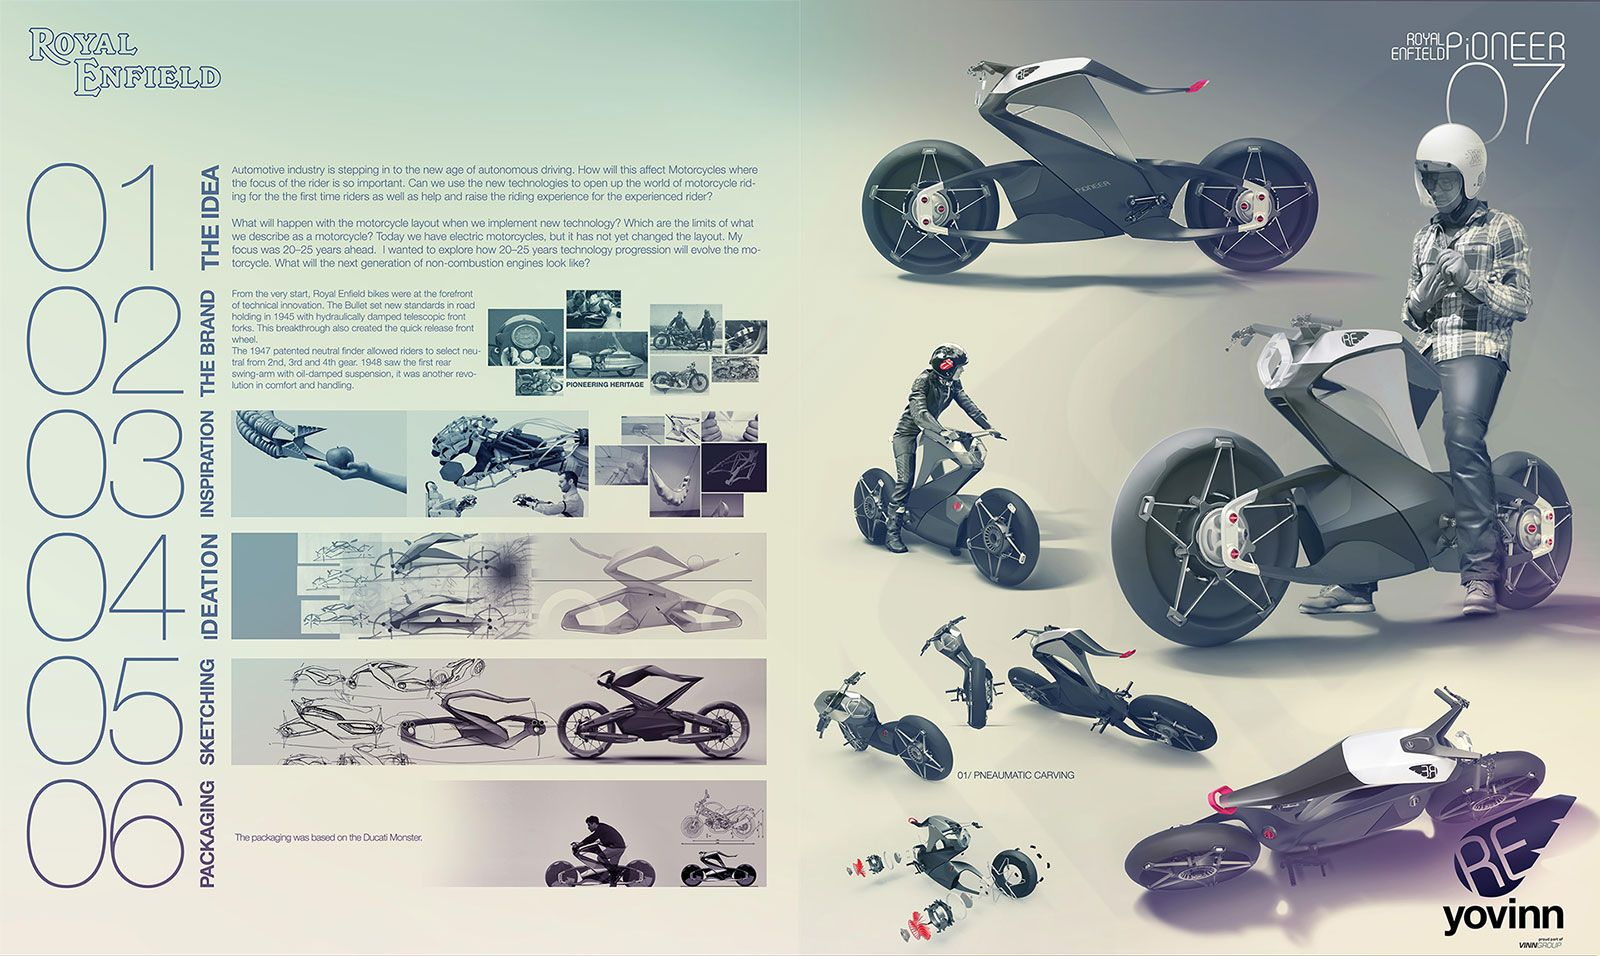 Quick poster design - Royal Enfield Pioneer By Daniel Gunnarsson Design Poster